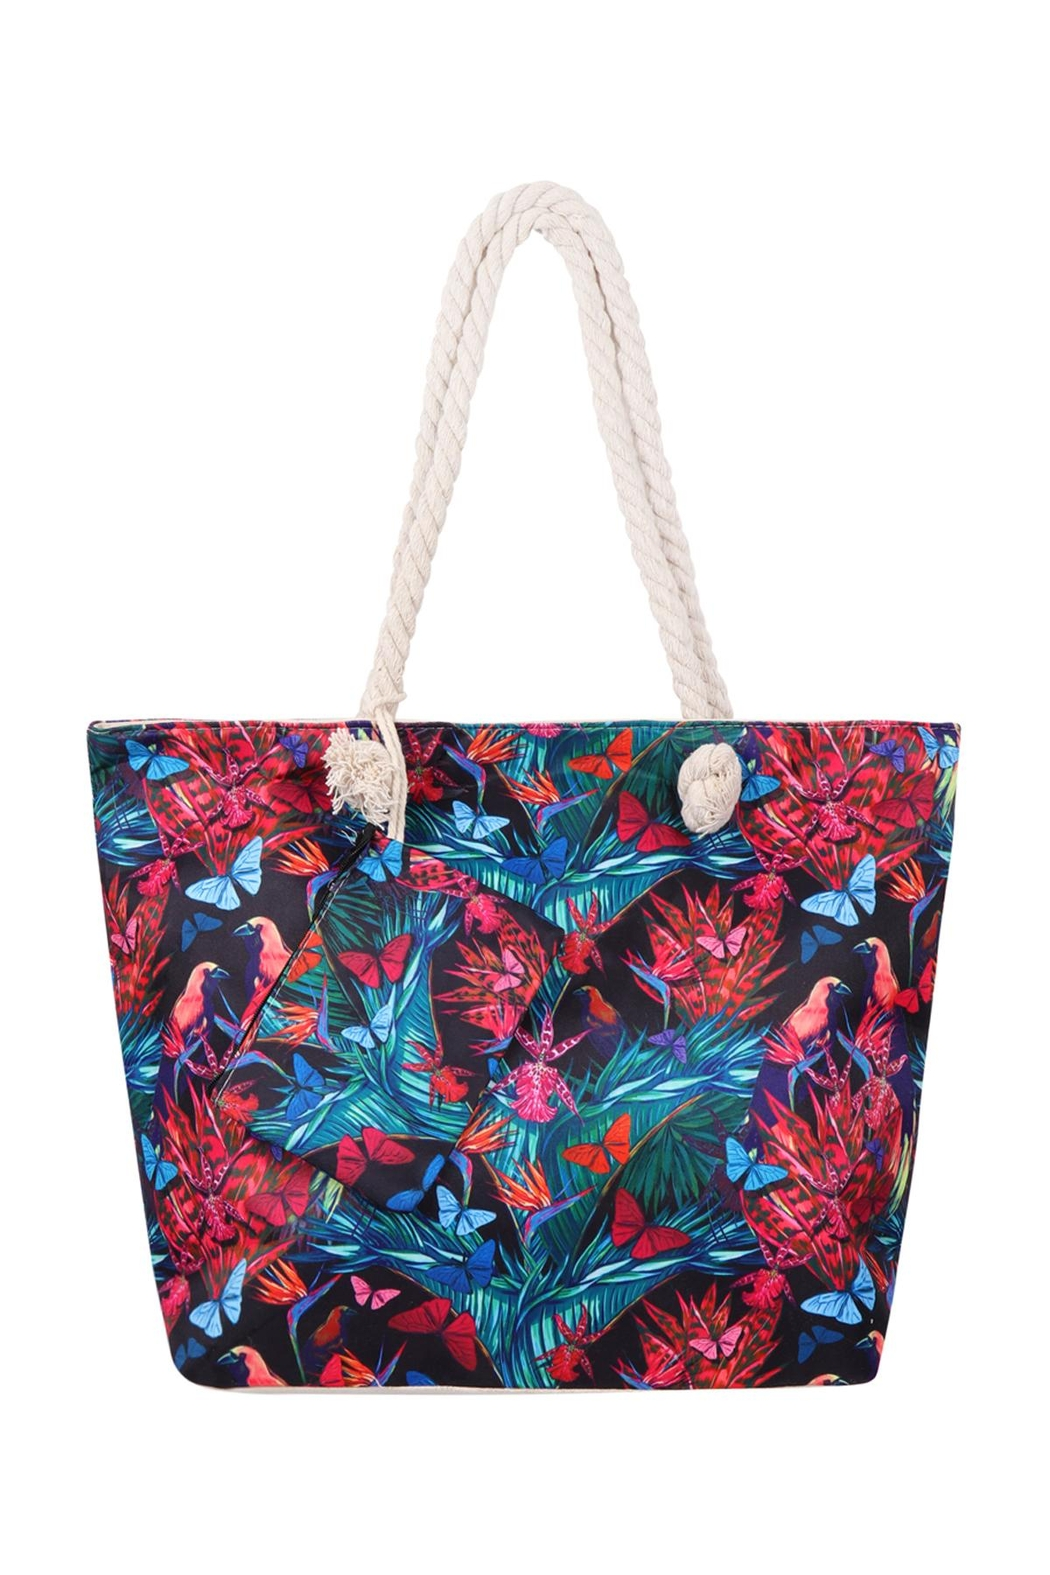 Riah Fashion Floral-Digital-Printed-Tote-Bag-W/-Matching-Wallet - Main Image